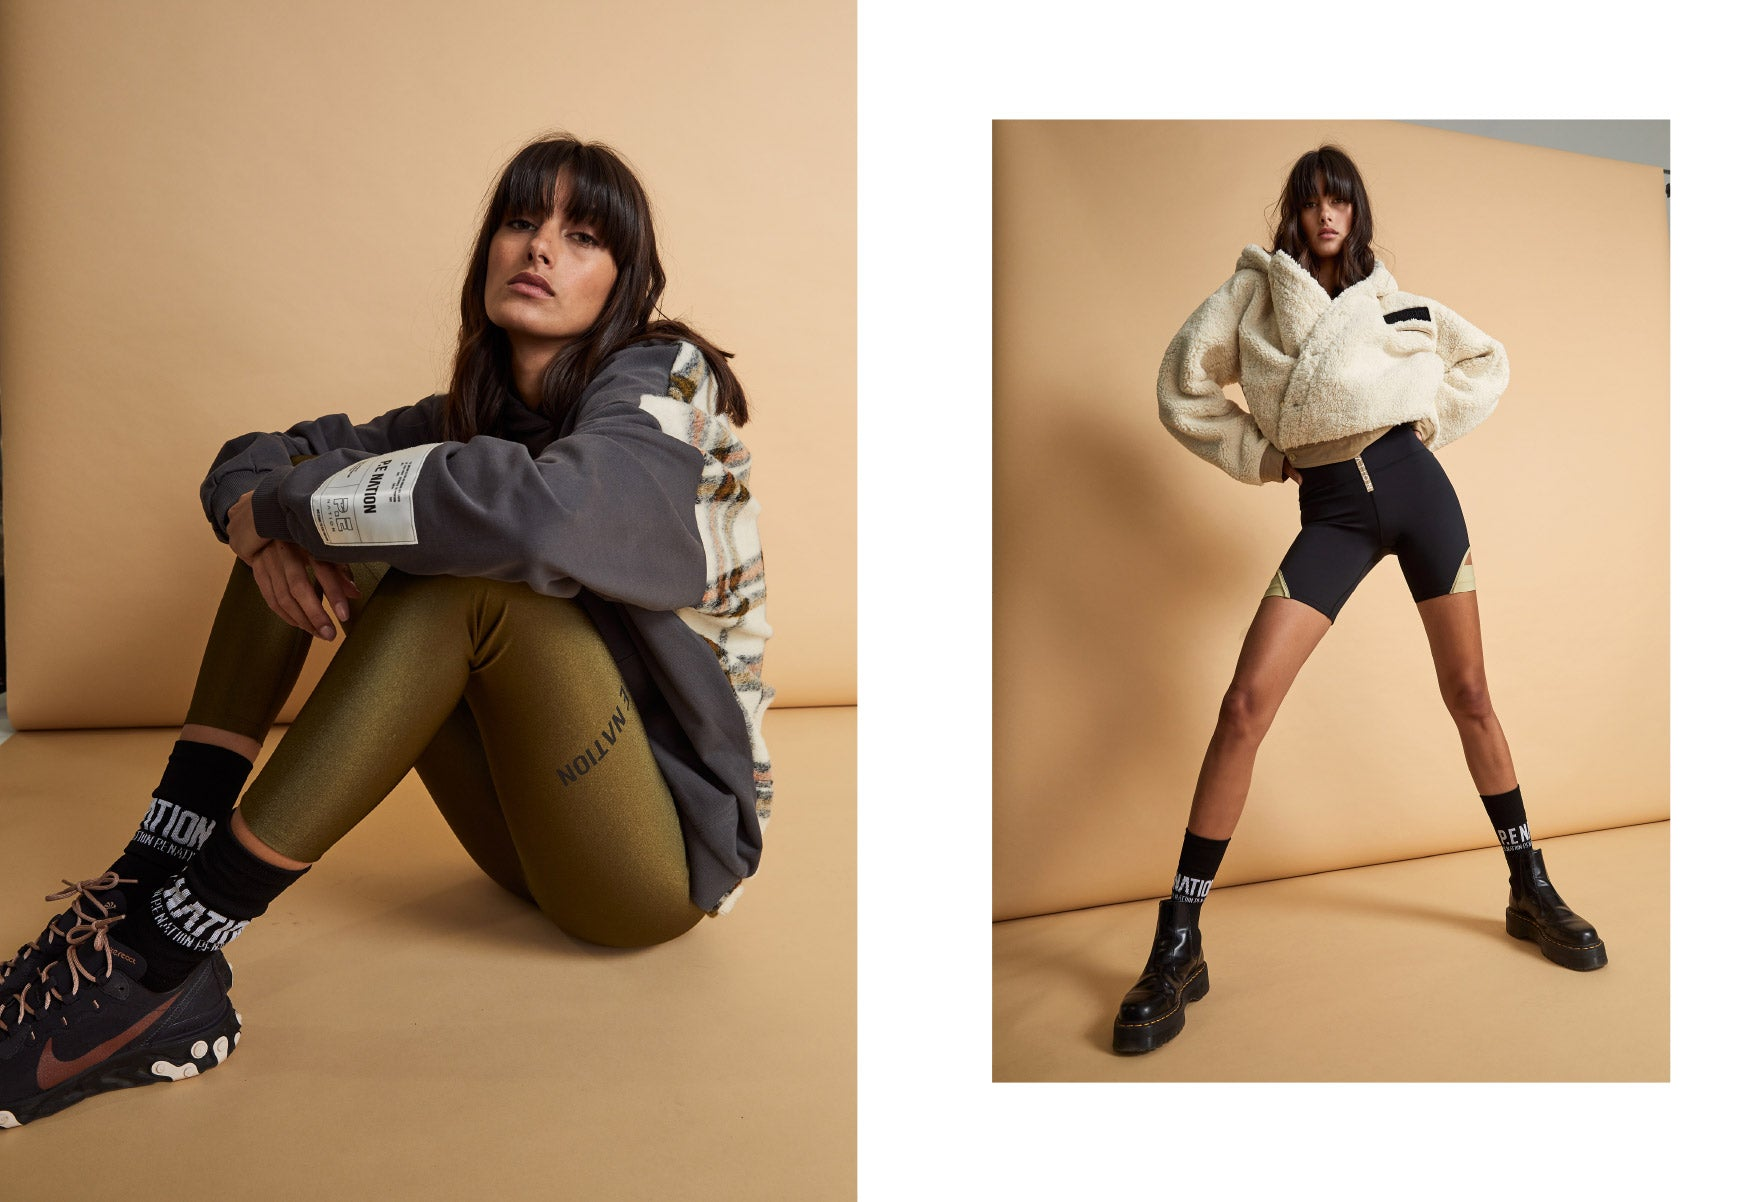 P.E NATION is Sydney-based activewear and Ready-to-Wear label